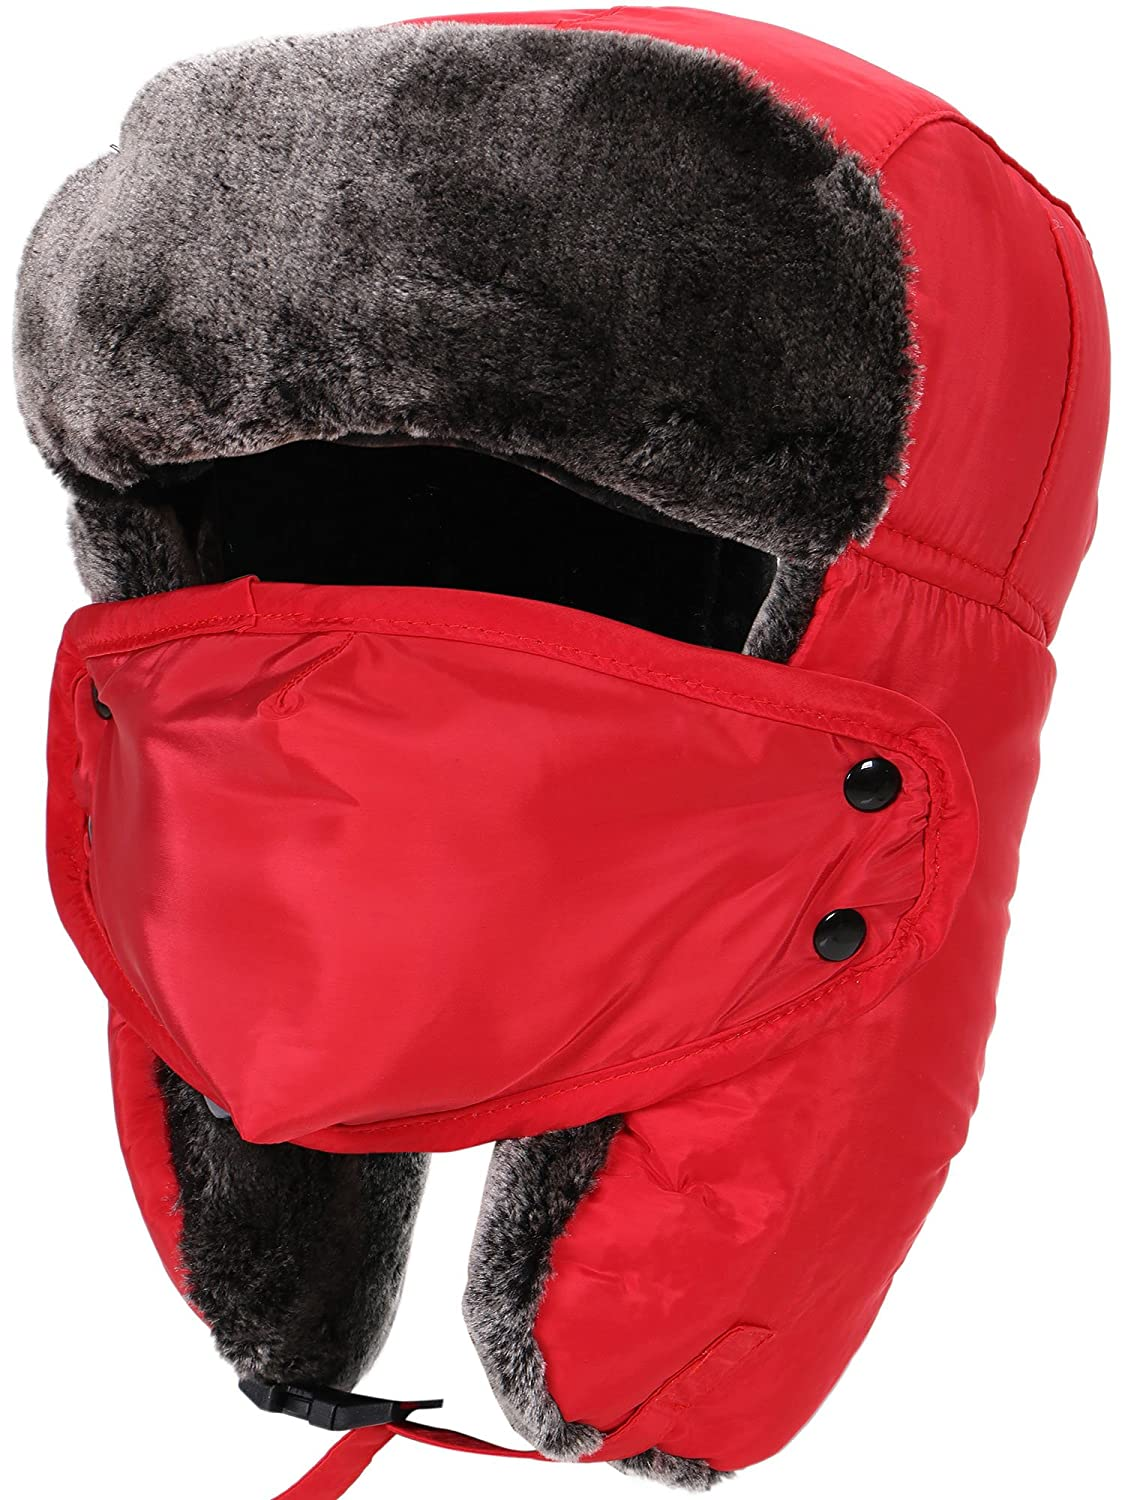 244bb30f1a2 Lullaby Outdoor Faux Fur Wind Resistant Waterproof Winter Expedition  Trapper Hat